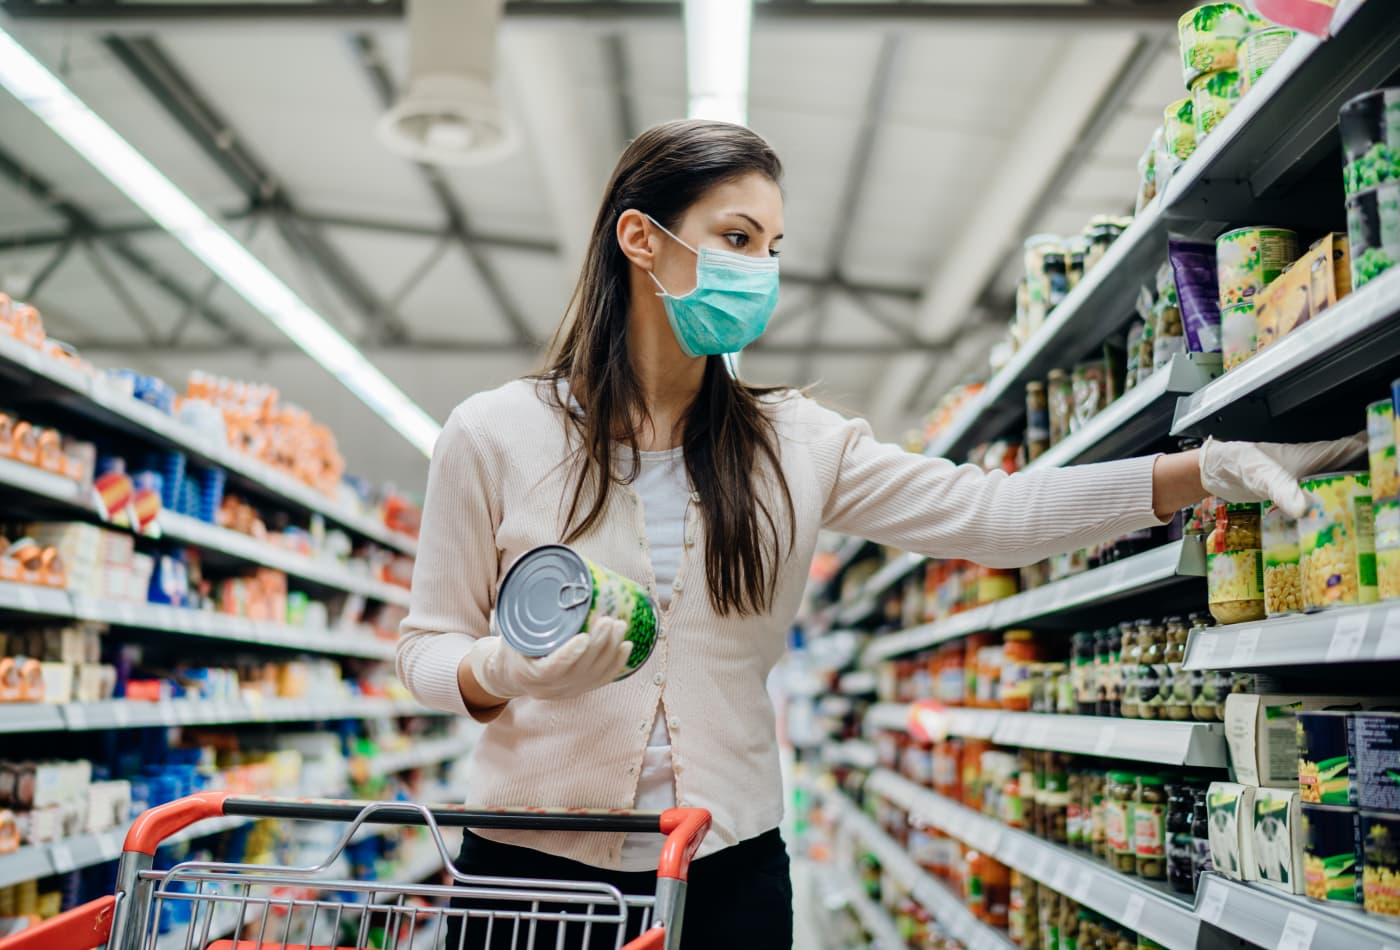 7 Expert Tips for Grocery Shopping on a Budget